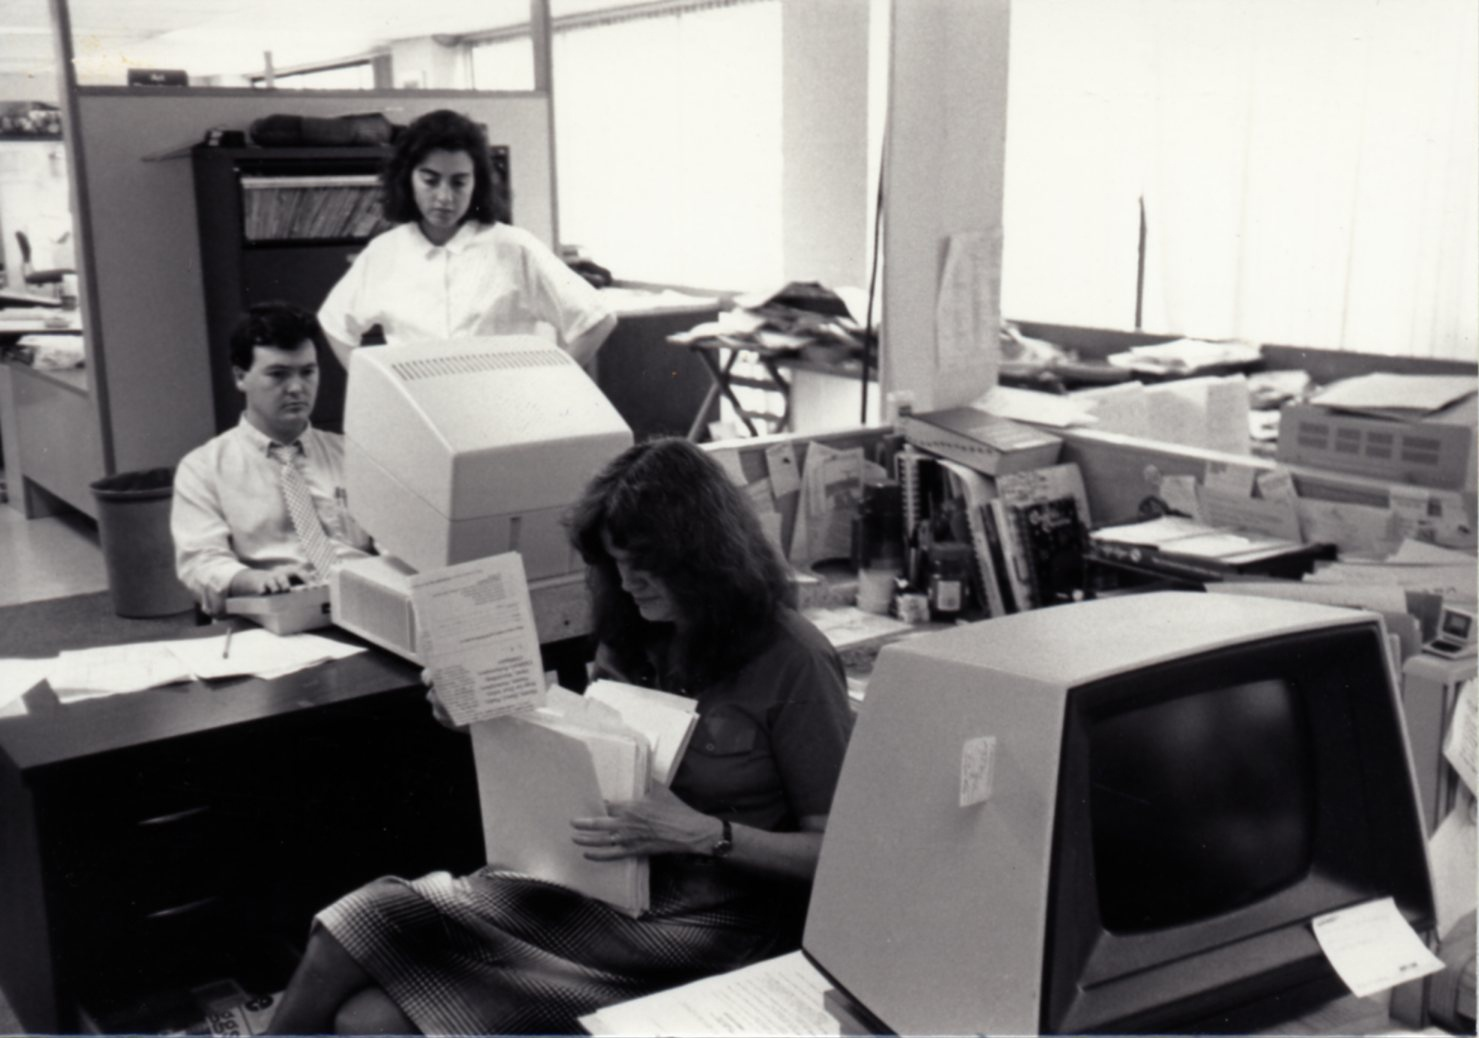 Art Coulson edits a story by Loukia Borrell at The Reston Times newspaper in 1987